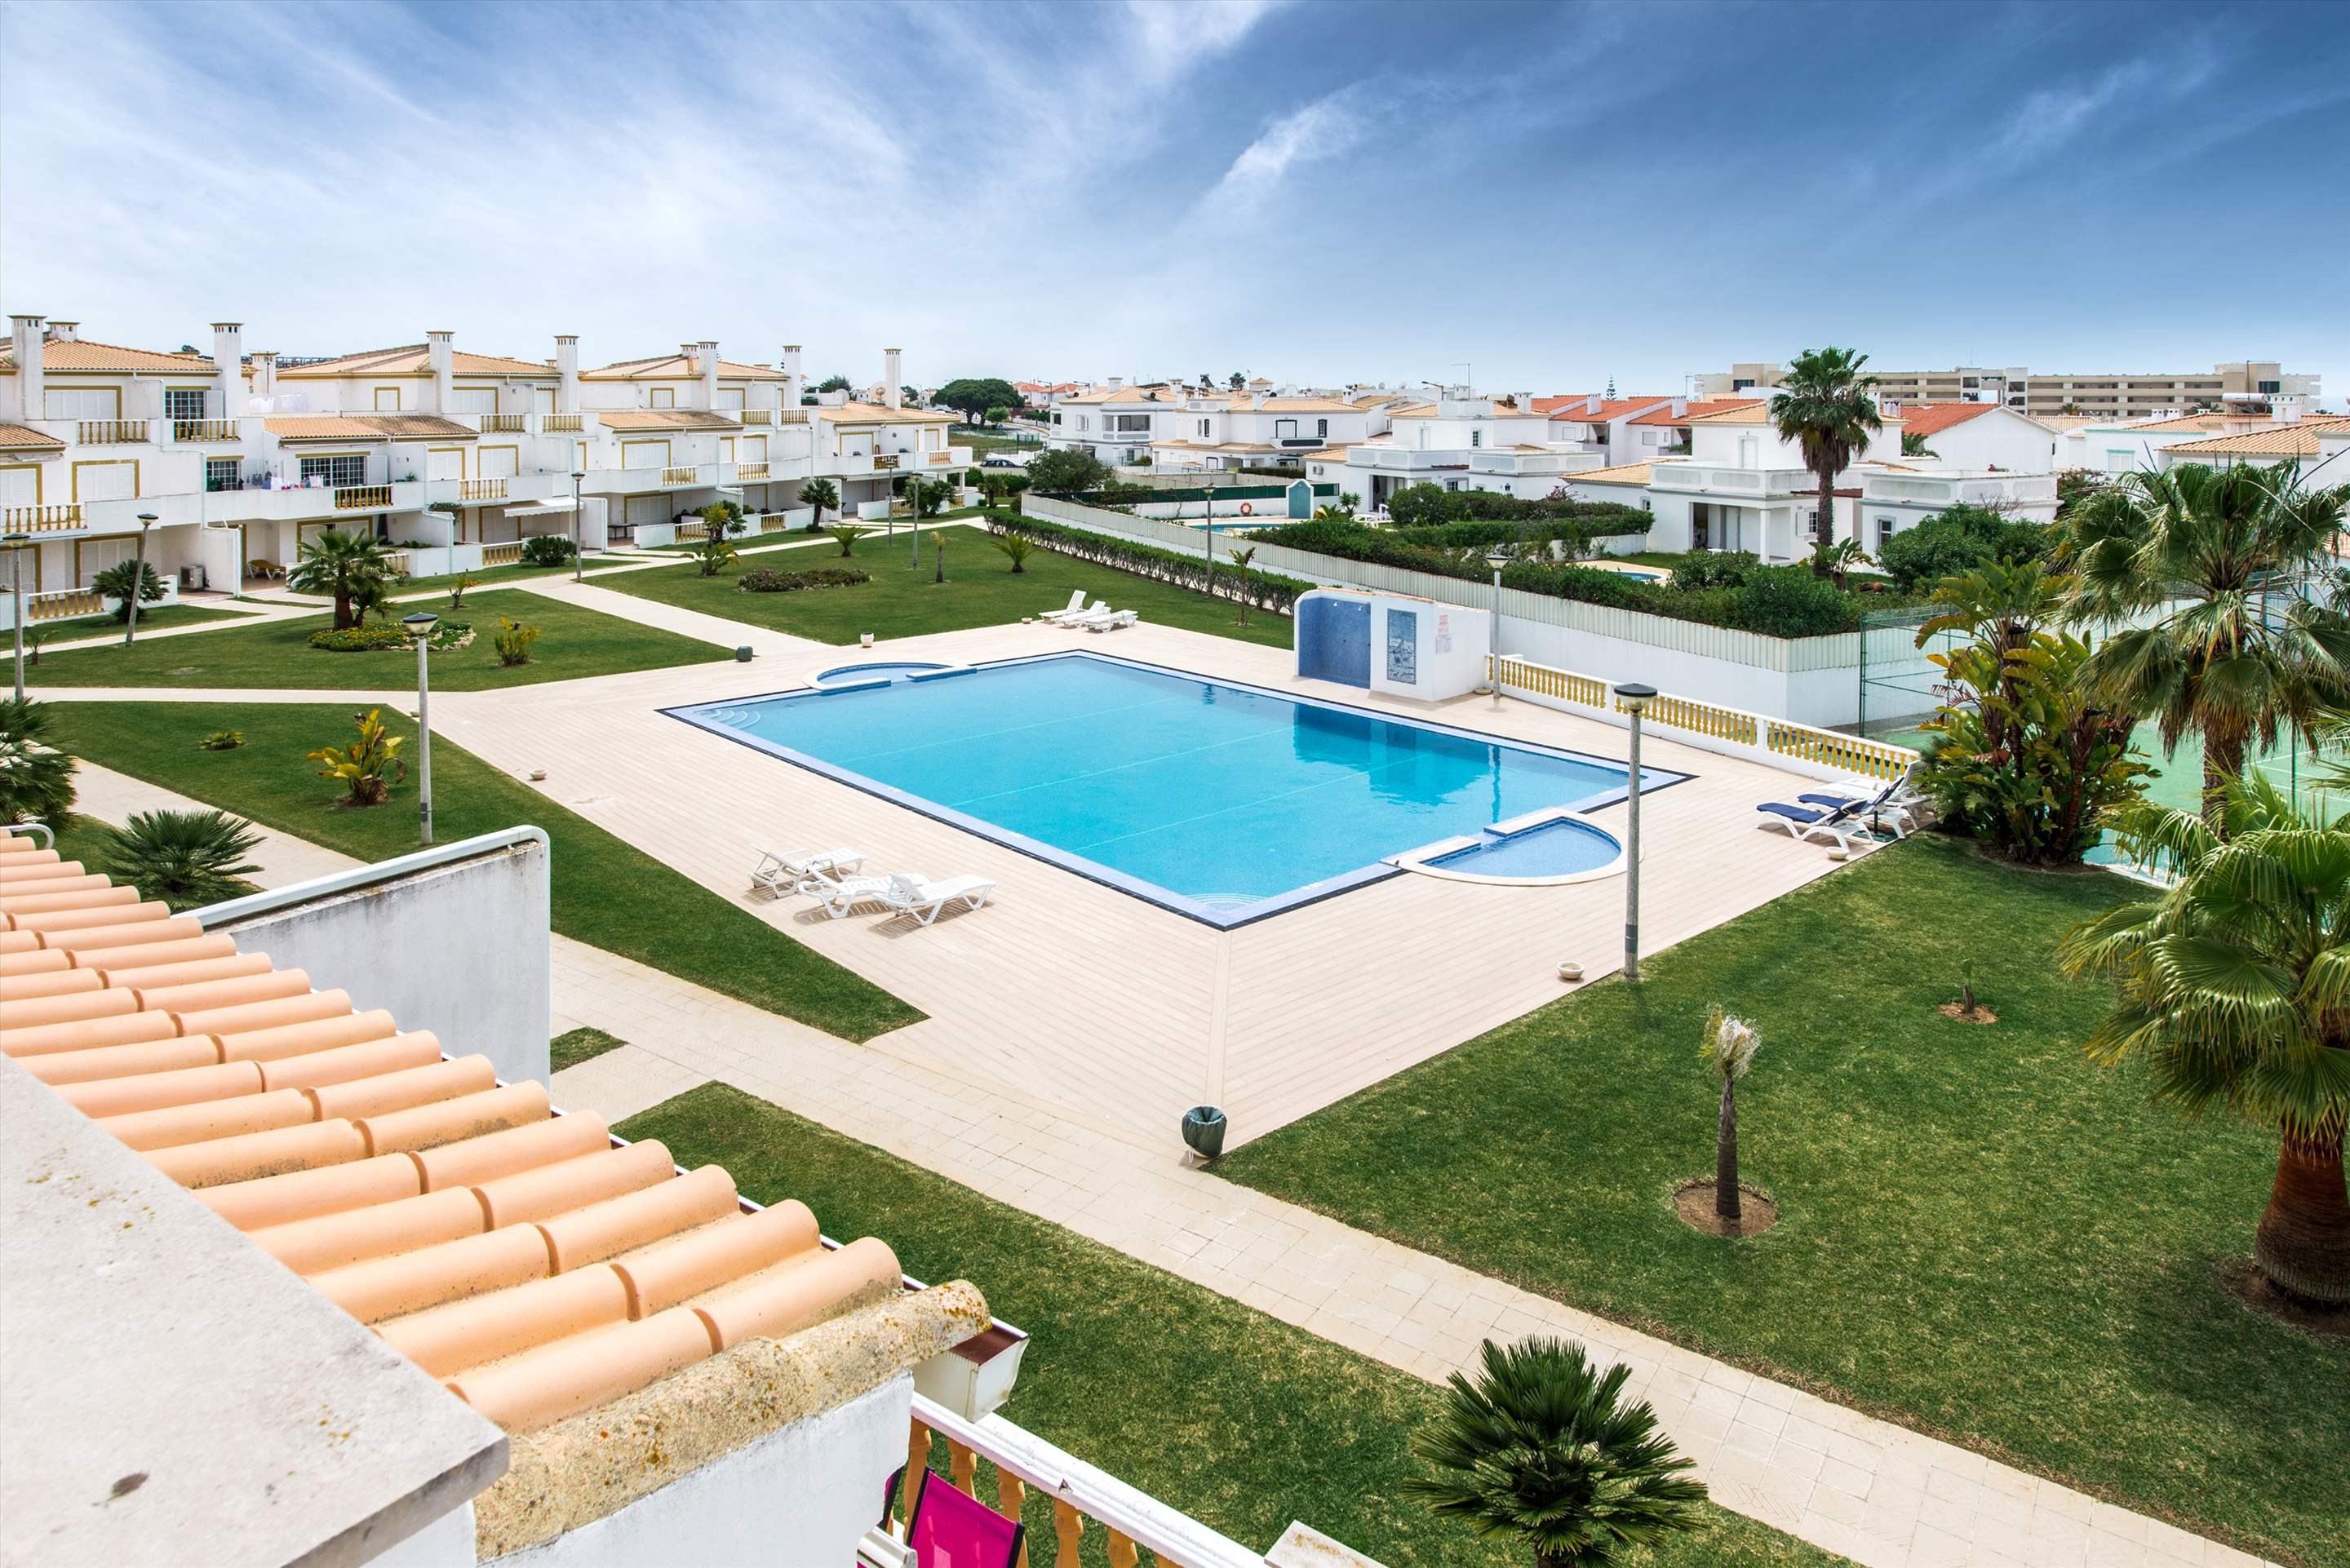 Apt O Monte, For Up to 4 Persons, 2 bedroom apartment in Gale, Vale da Parra and Guia, Algarve Photo #23